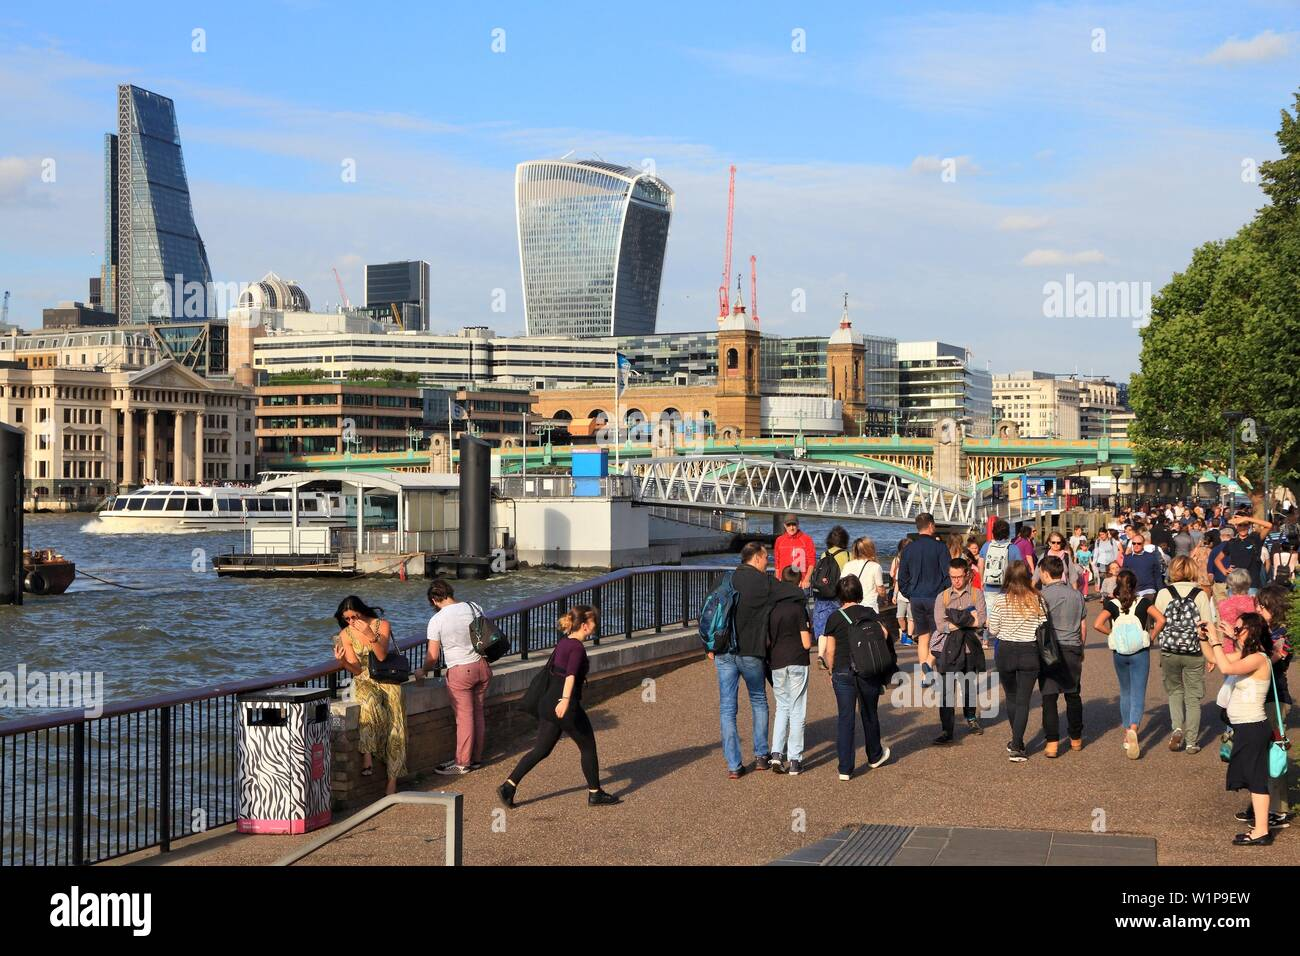 LONDON, UK - JULY 8, 2016: People walk along London Embankment in the UK. London is the most populous city in the UK with 13 million people living in - Stock Image